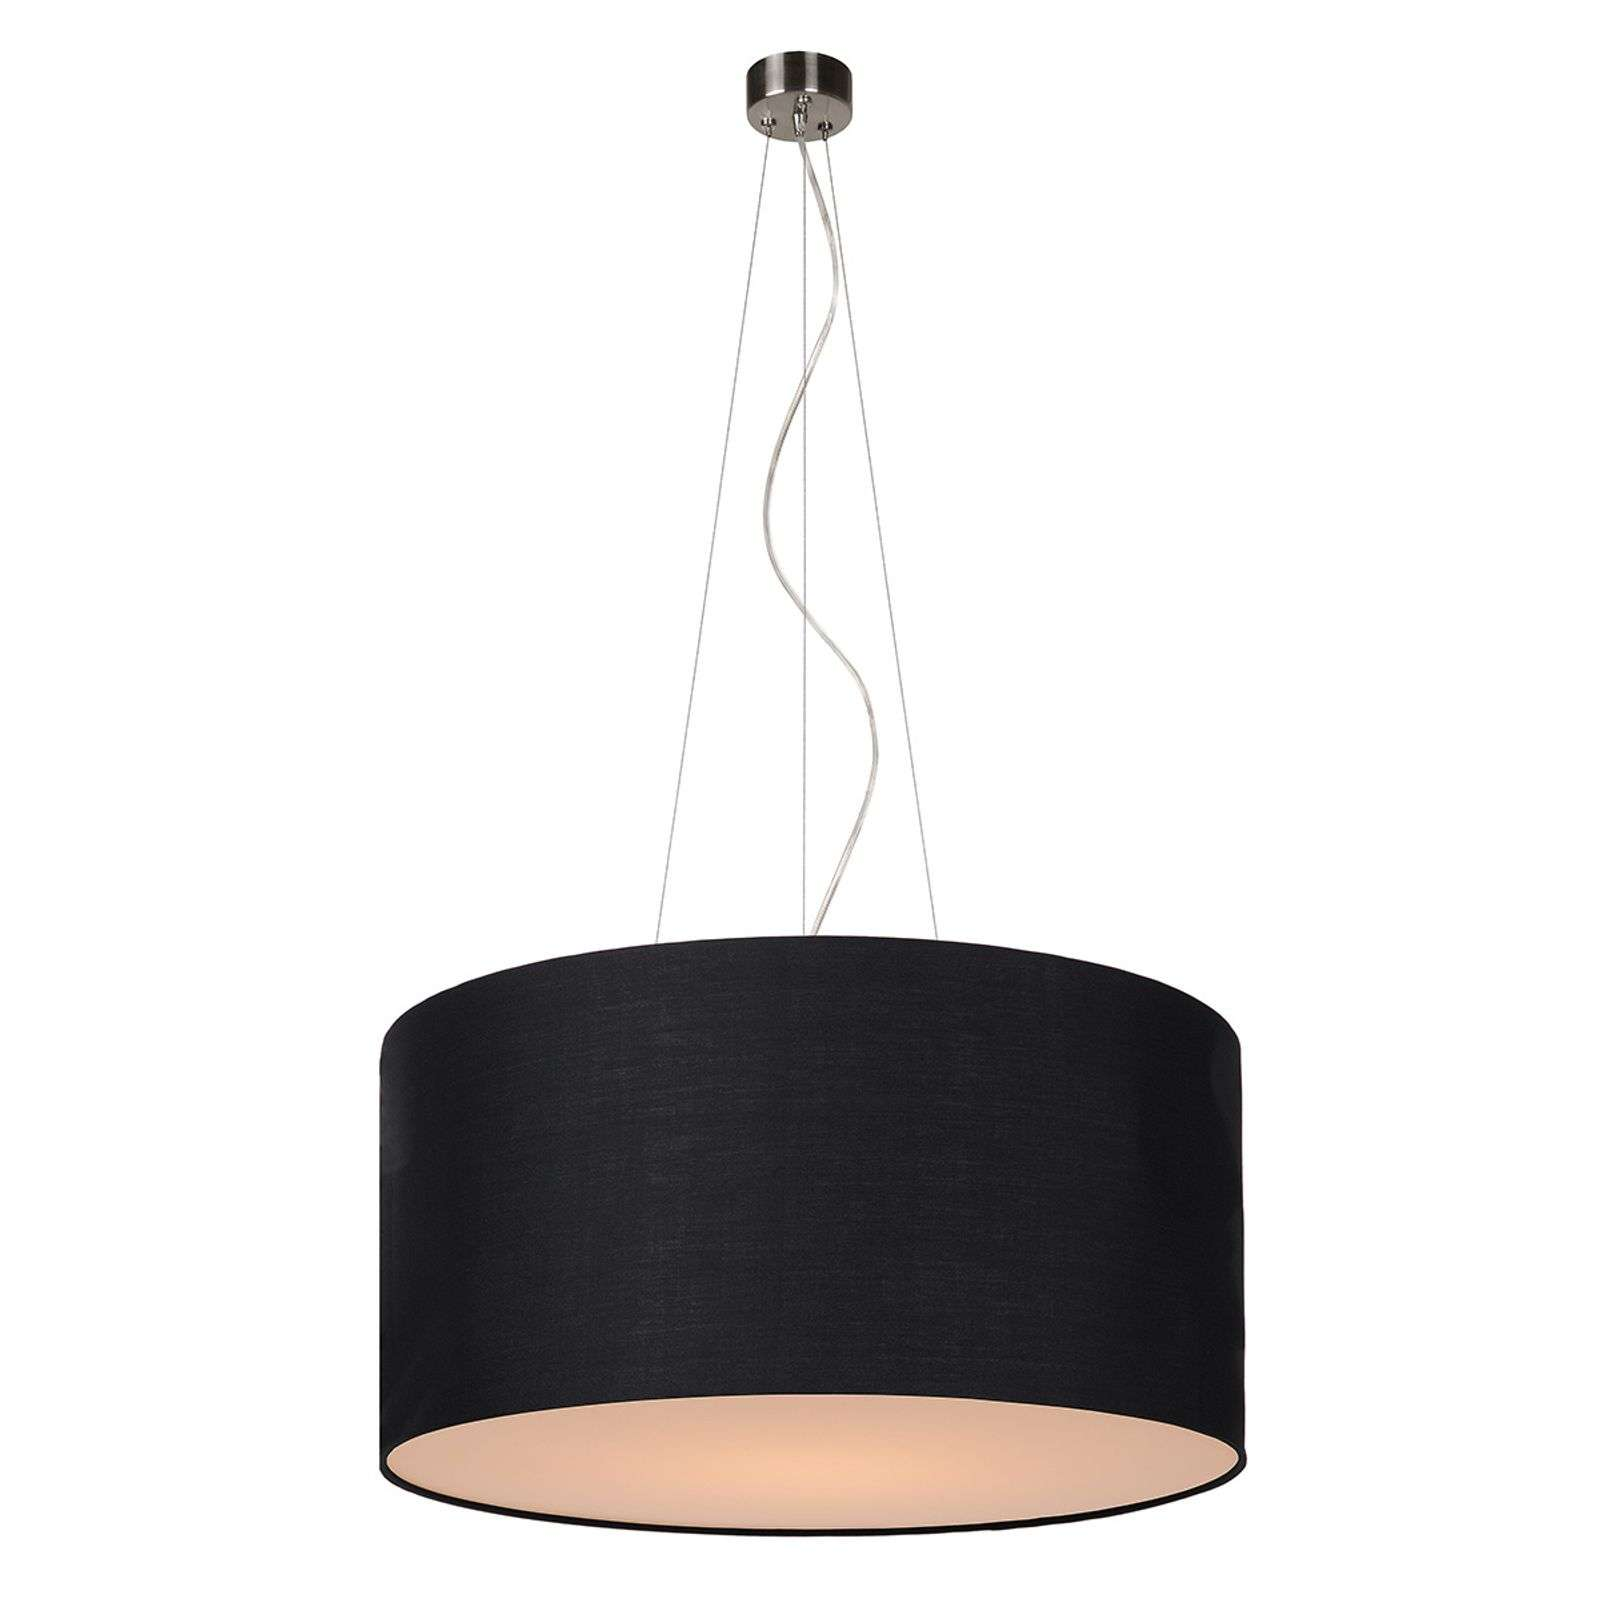 Suspension universelle CORAL 60 cm noire